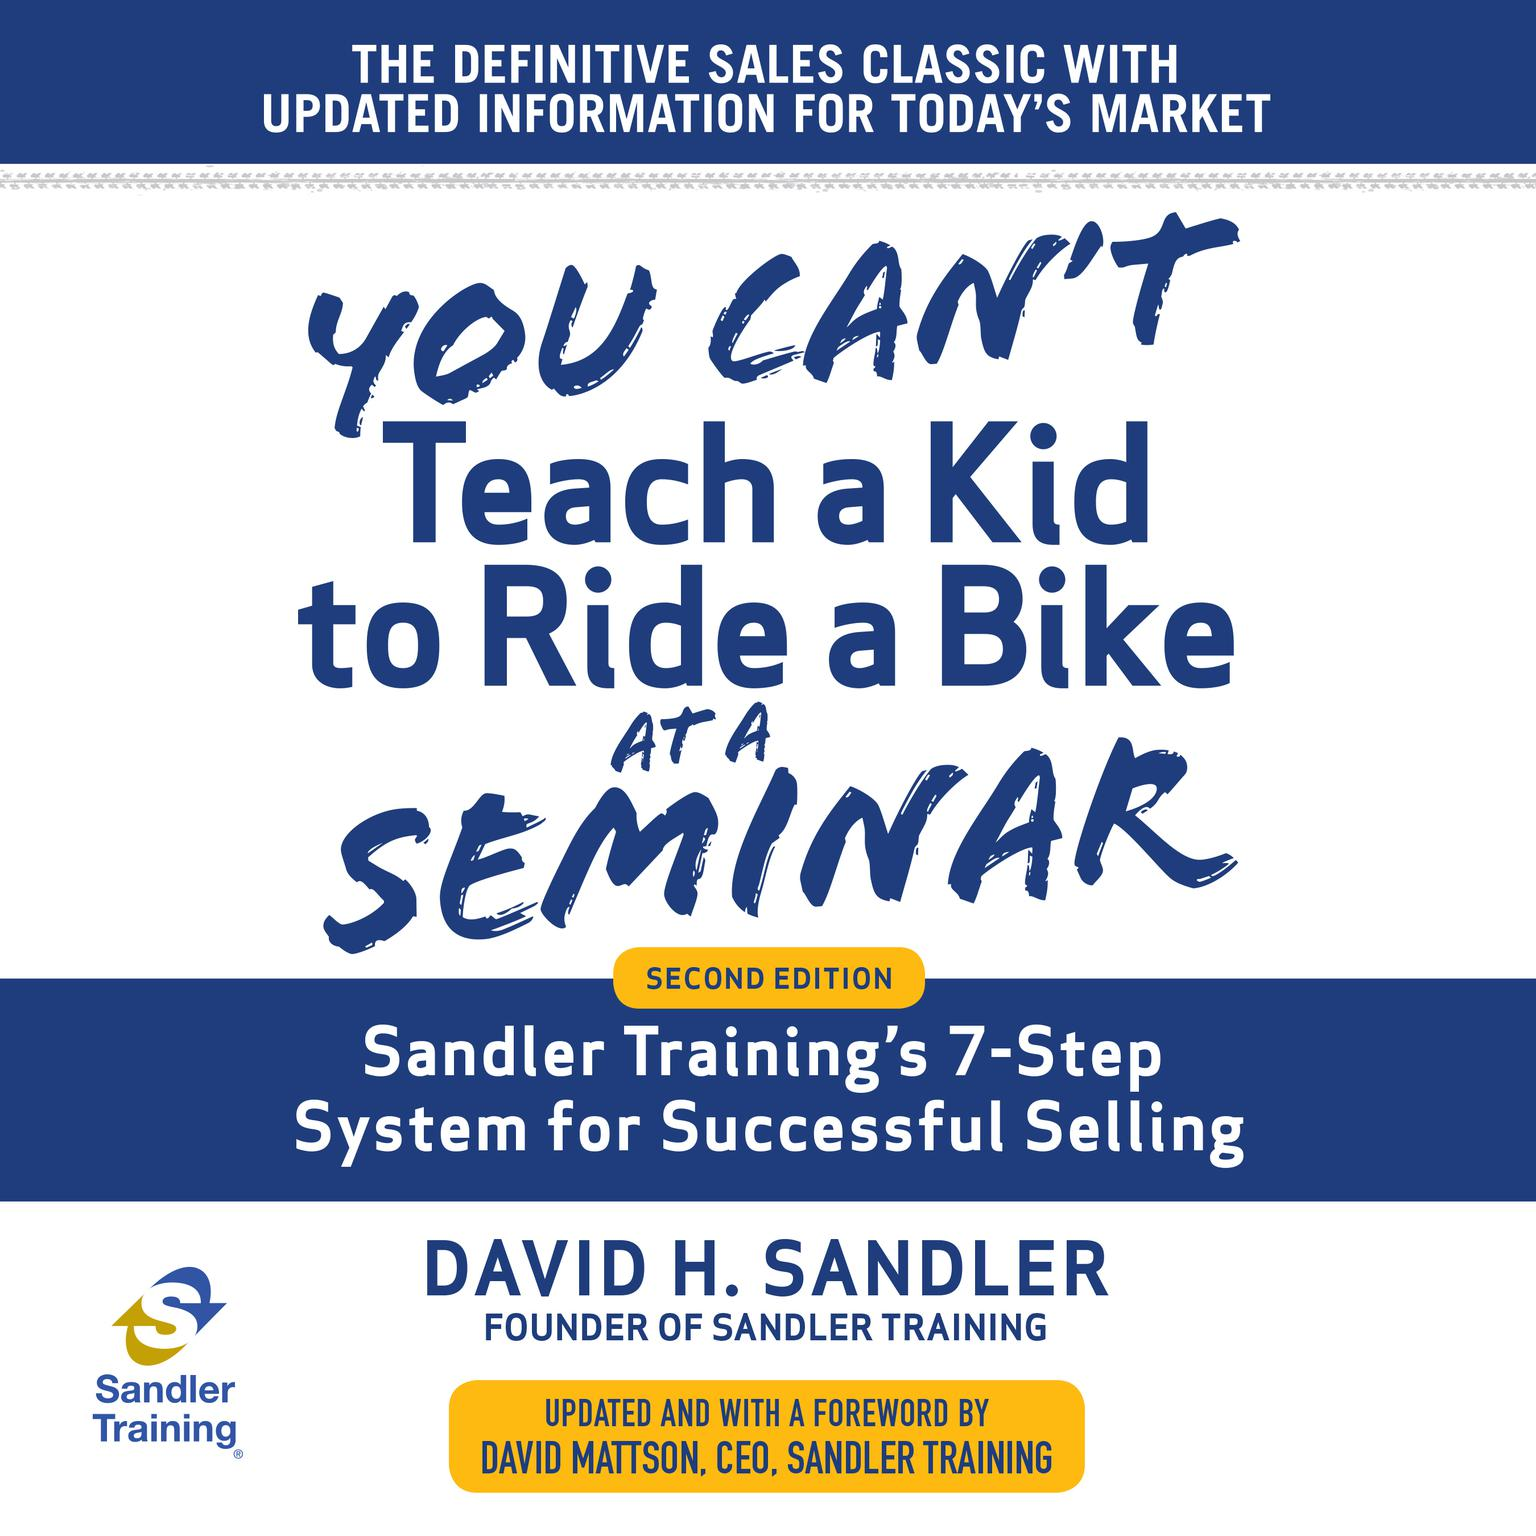 Printable You Can't Teach a Kid to Ride a Bike at a Seminar: Sandler Training's 7-Step System for Successful Selling 2nd Edition Audiobook Cover Art